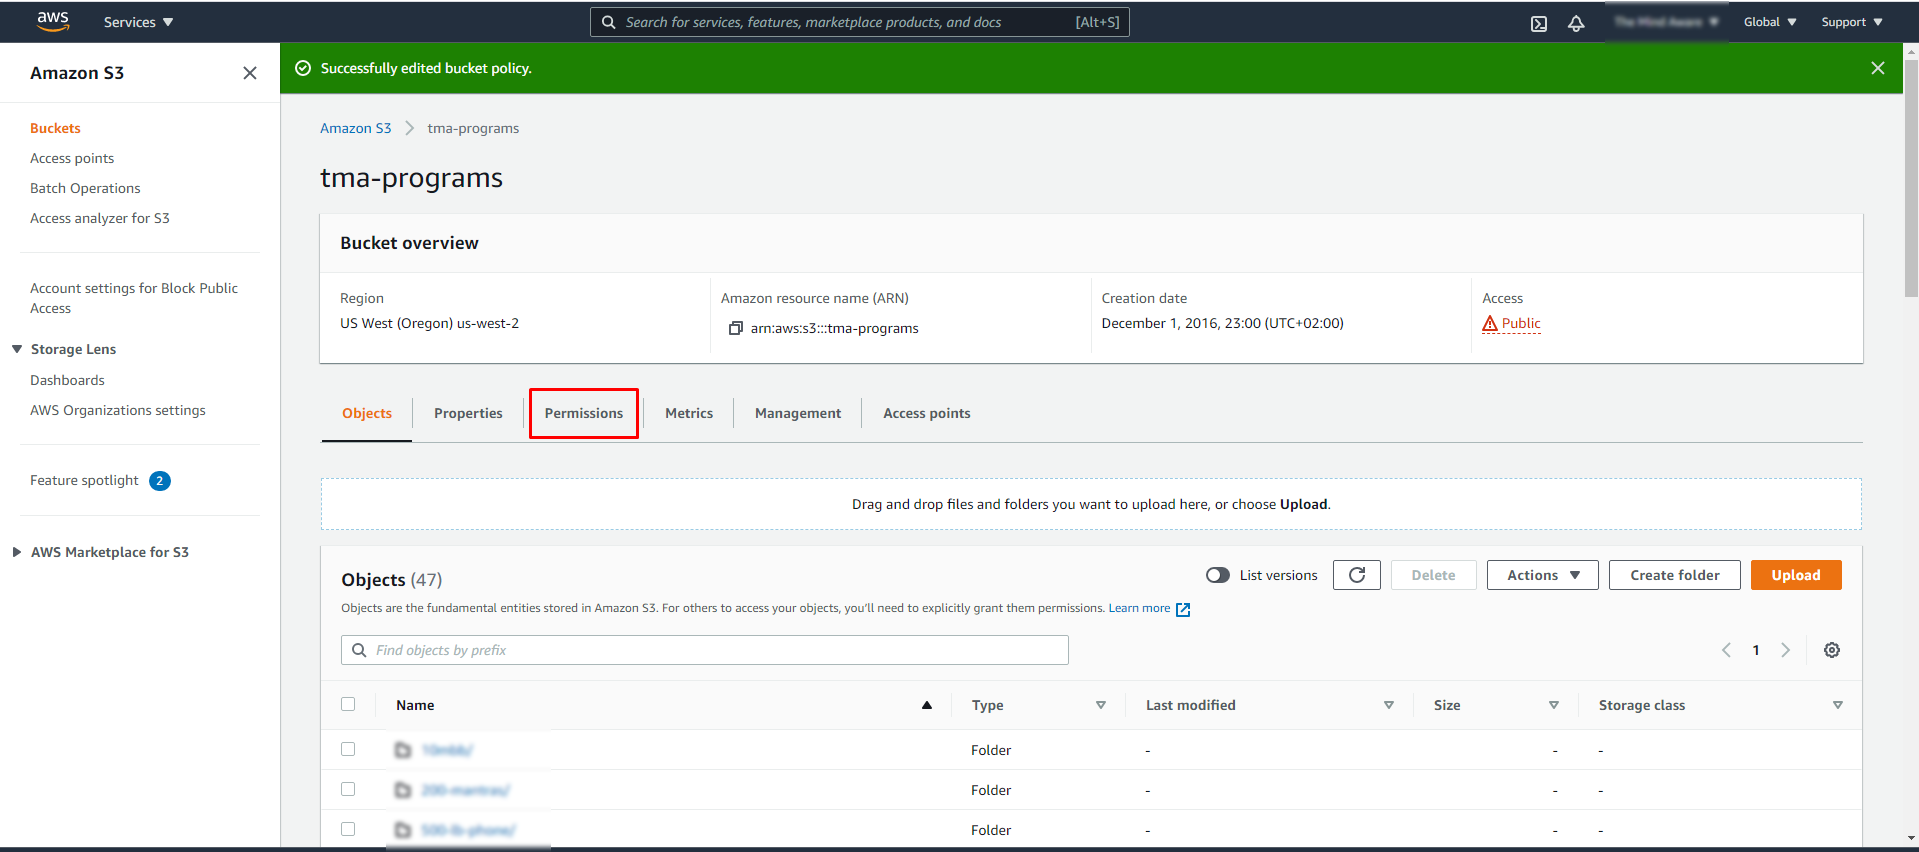 Screenshot 193 - Restricting access to your Amazon S3 to members only without using a plugin